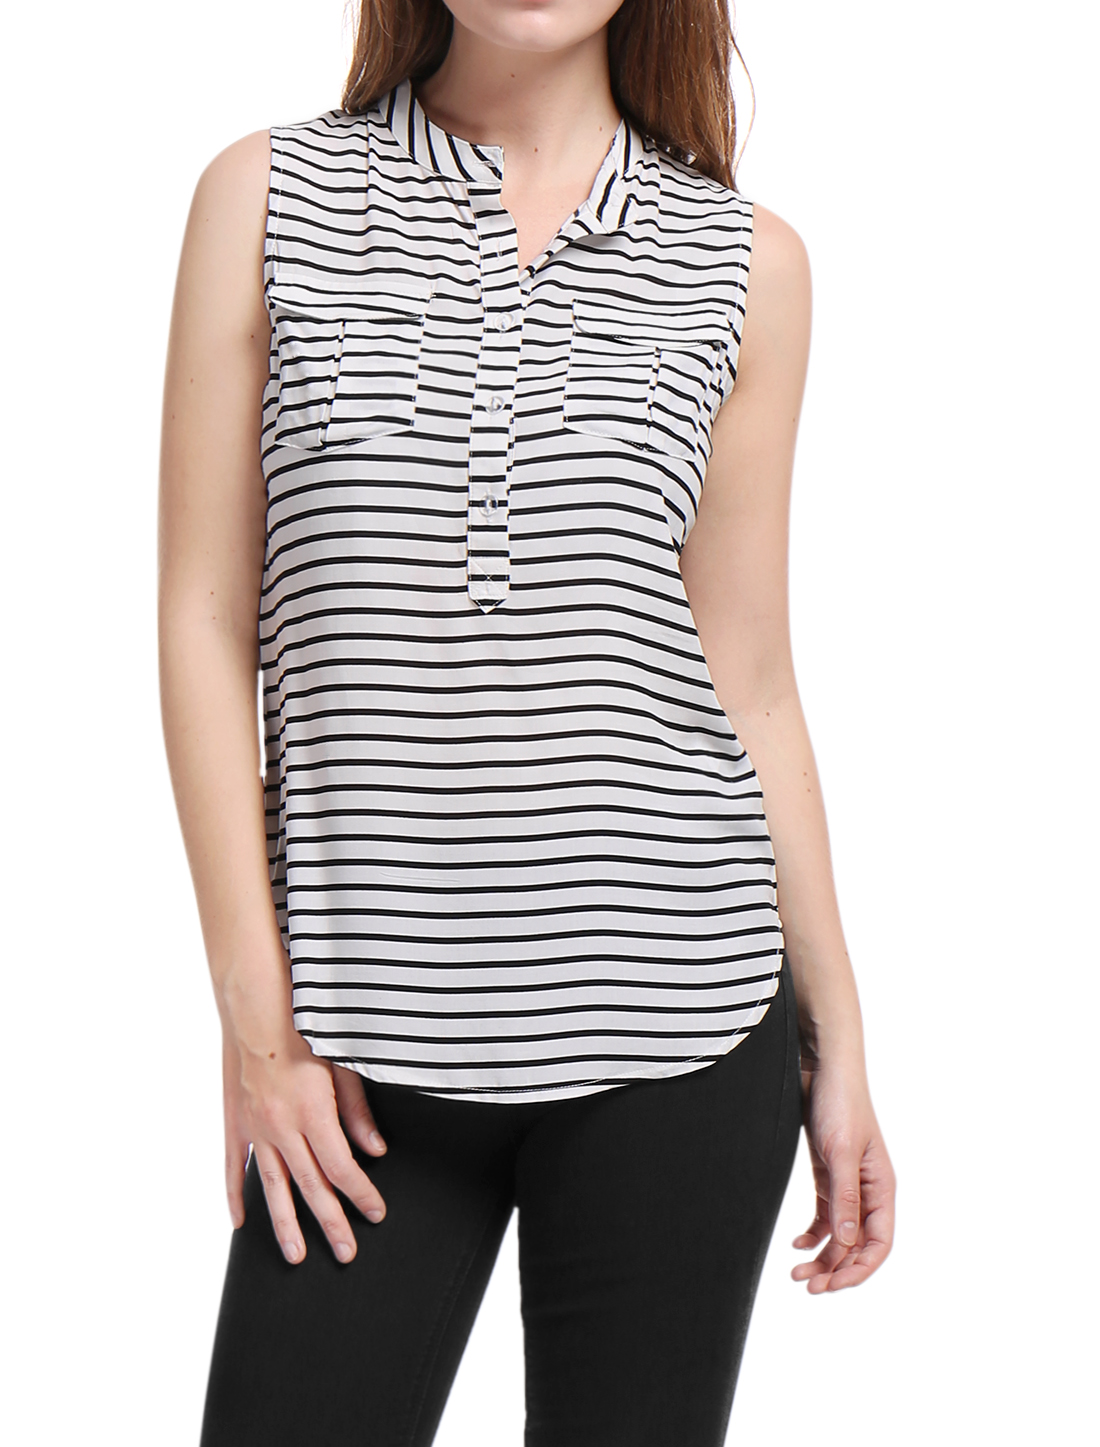 Women Stand Collar Half Placket Striped Sleeveless Shirt White S